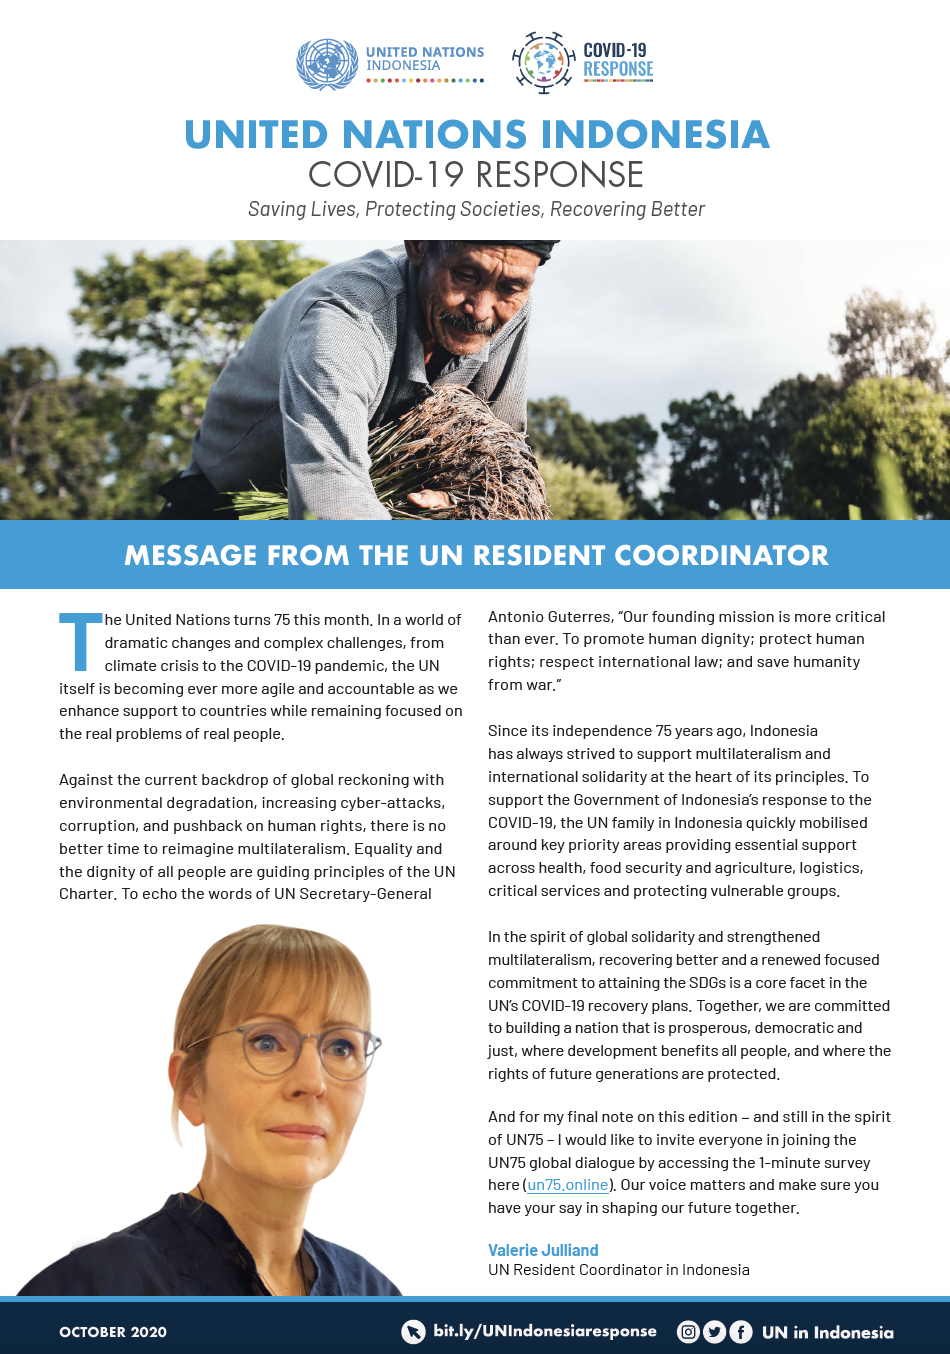 UN in Indonesia COVID-19 Response Newsletter October 2020